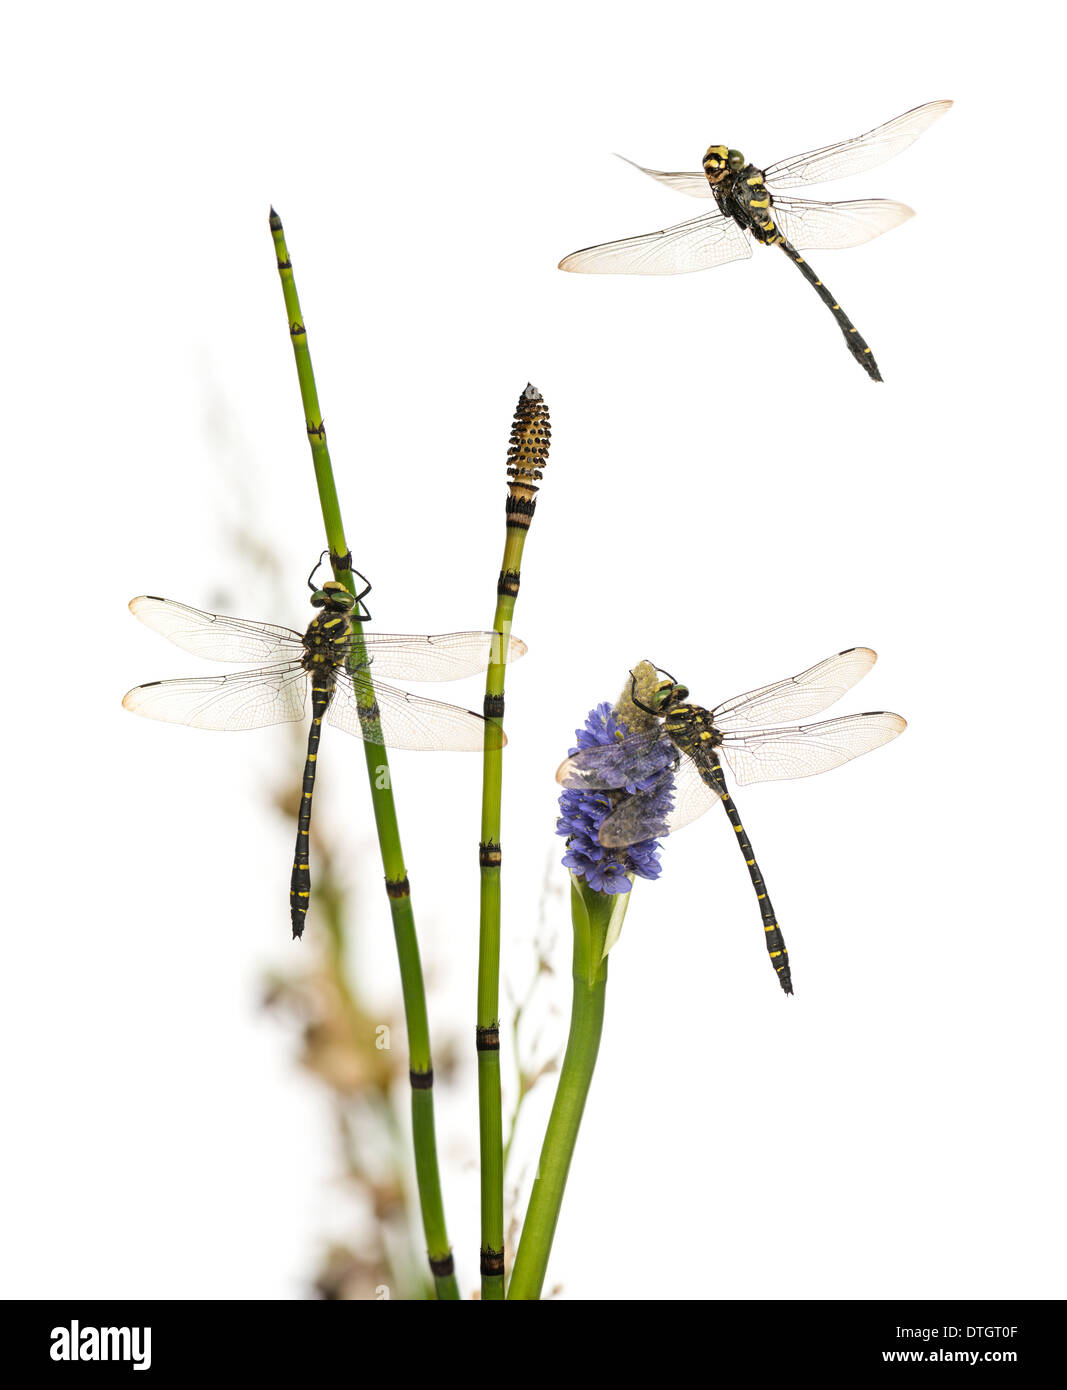 Group of Cordulegaster bidentata dragonflies on plant, in front of white background - Stock Image